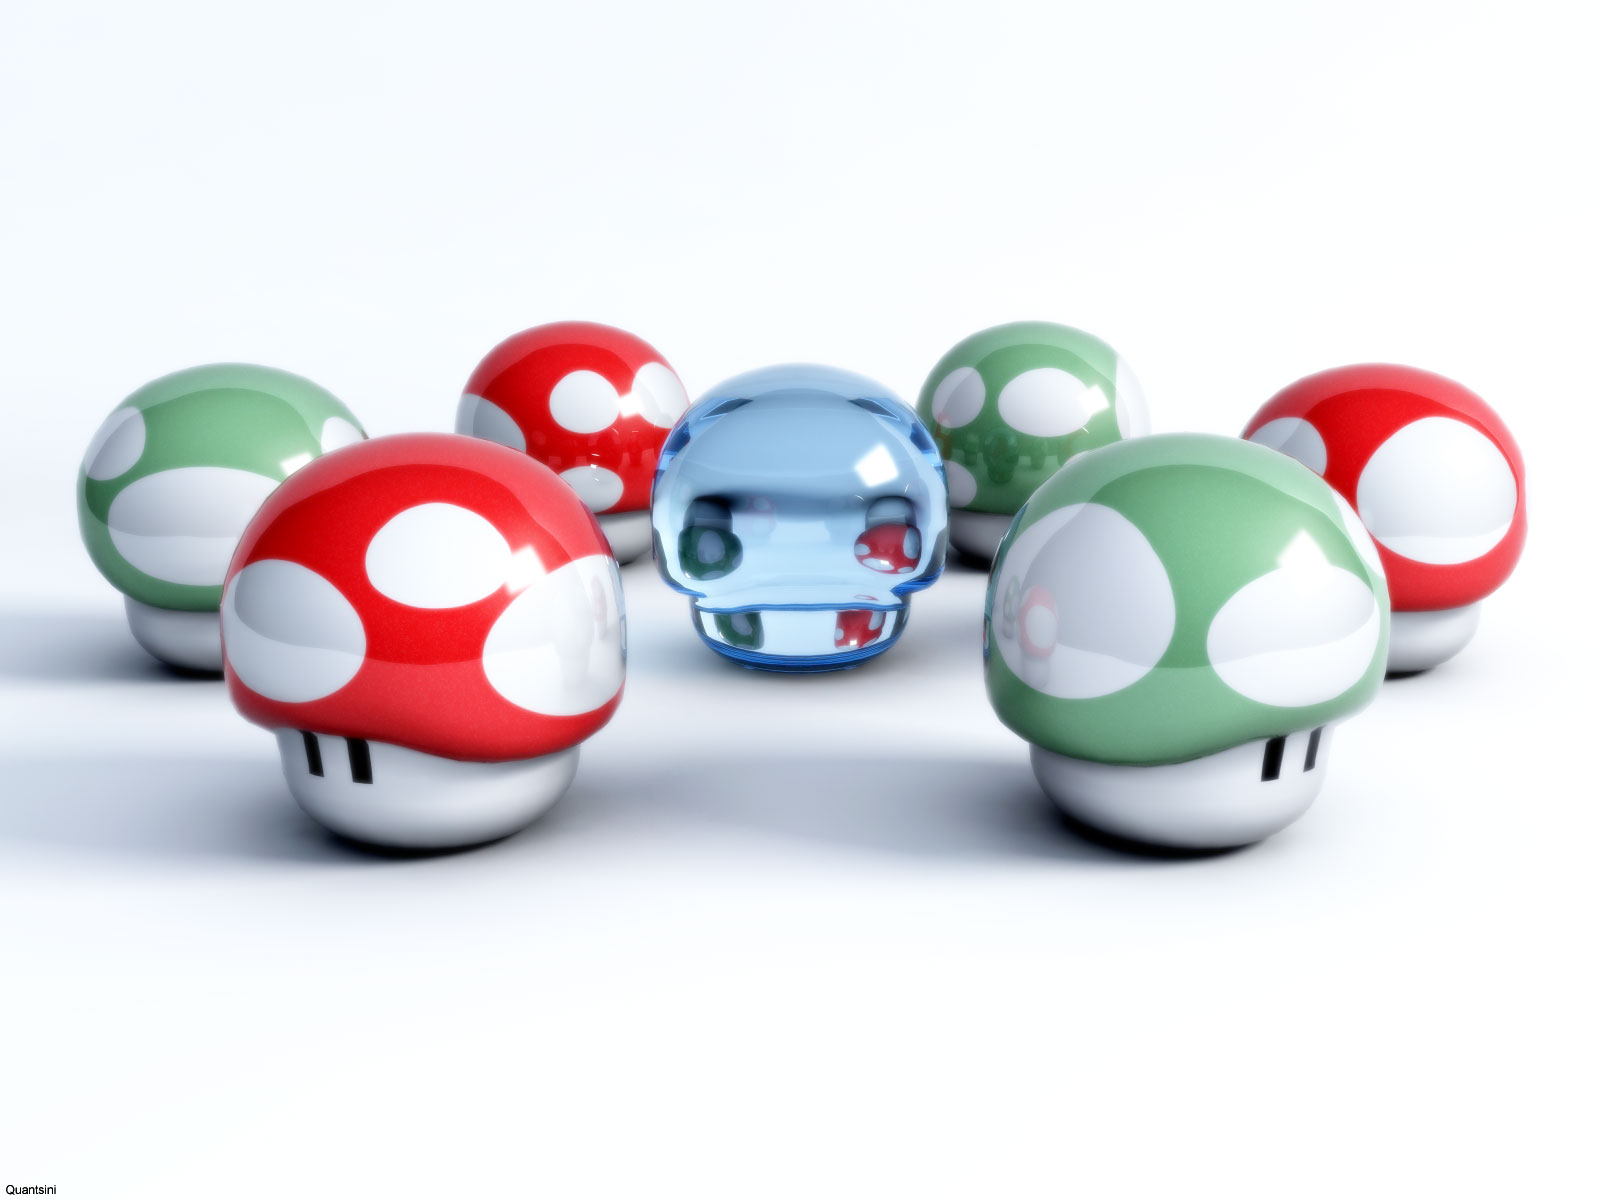 http://3.bp.blogspot.com/-QRlj-eV2HcU/T8p2cEWJwNI/AAAAAAAAA4E/RJ5I1IDgwTk/s1600/1up+mario+mushroom+red+green+3d+wallpaper+background.jpg